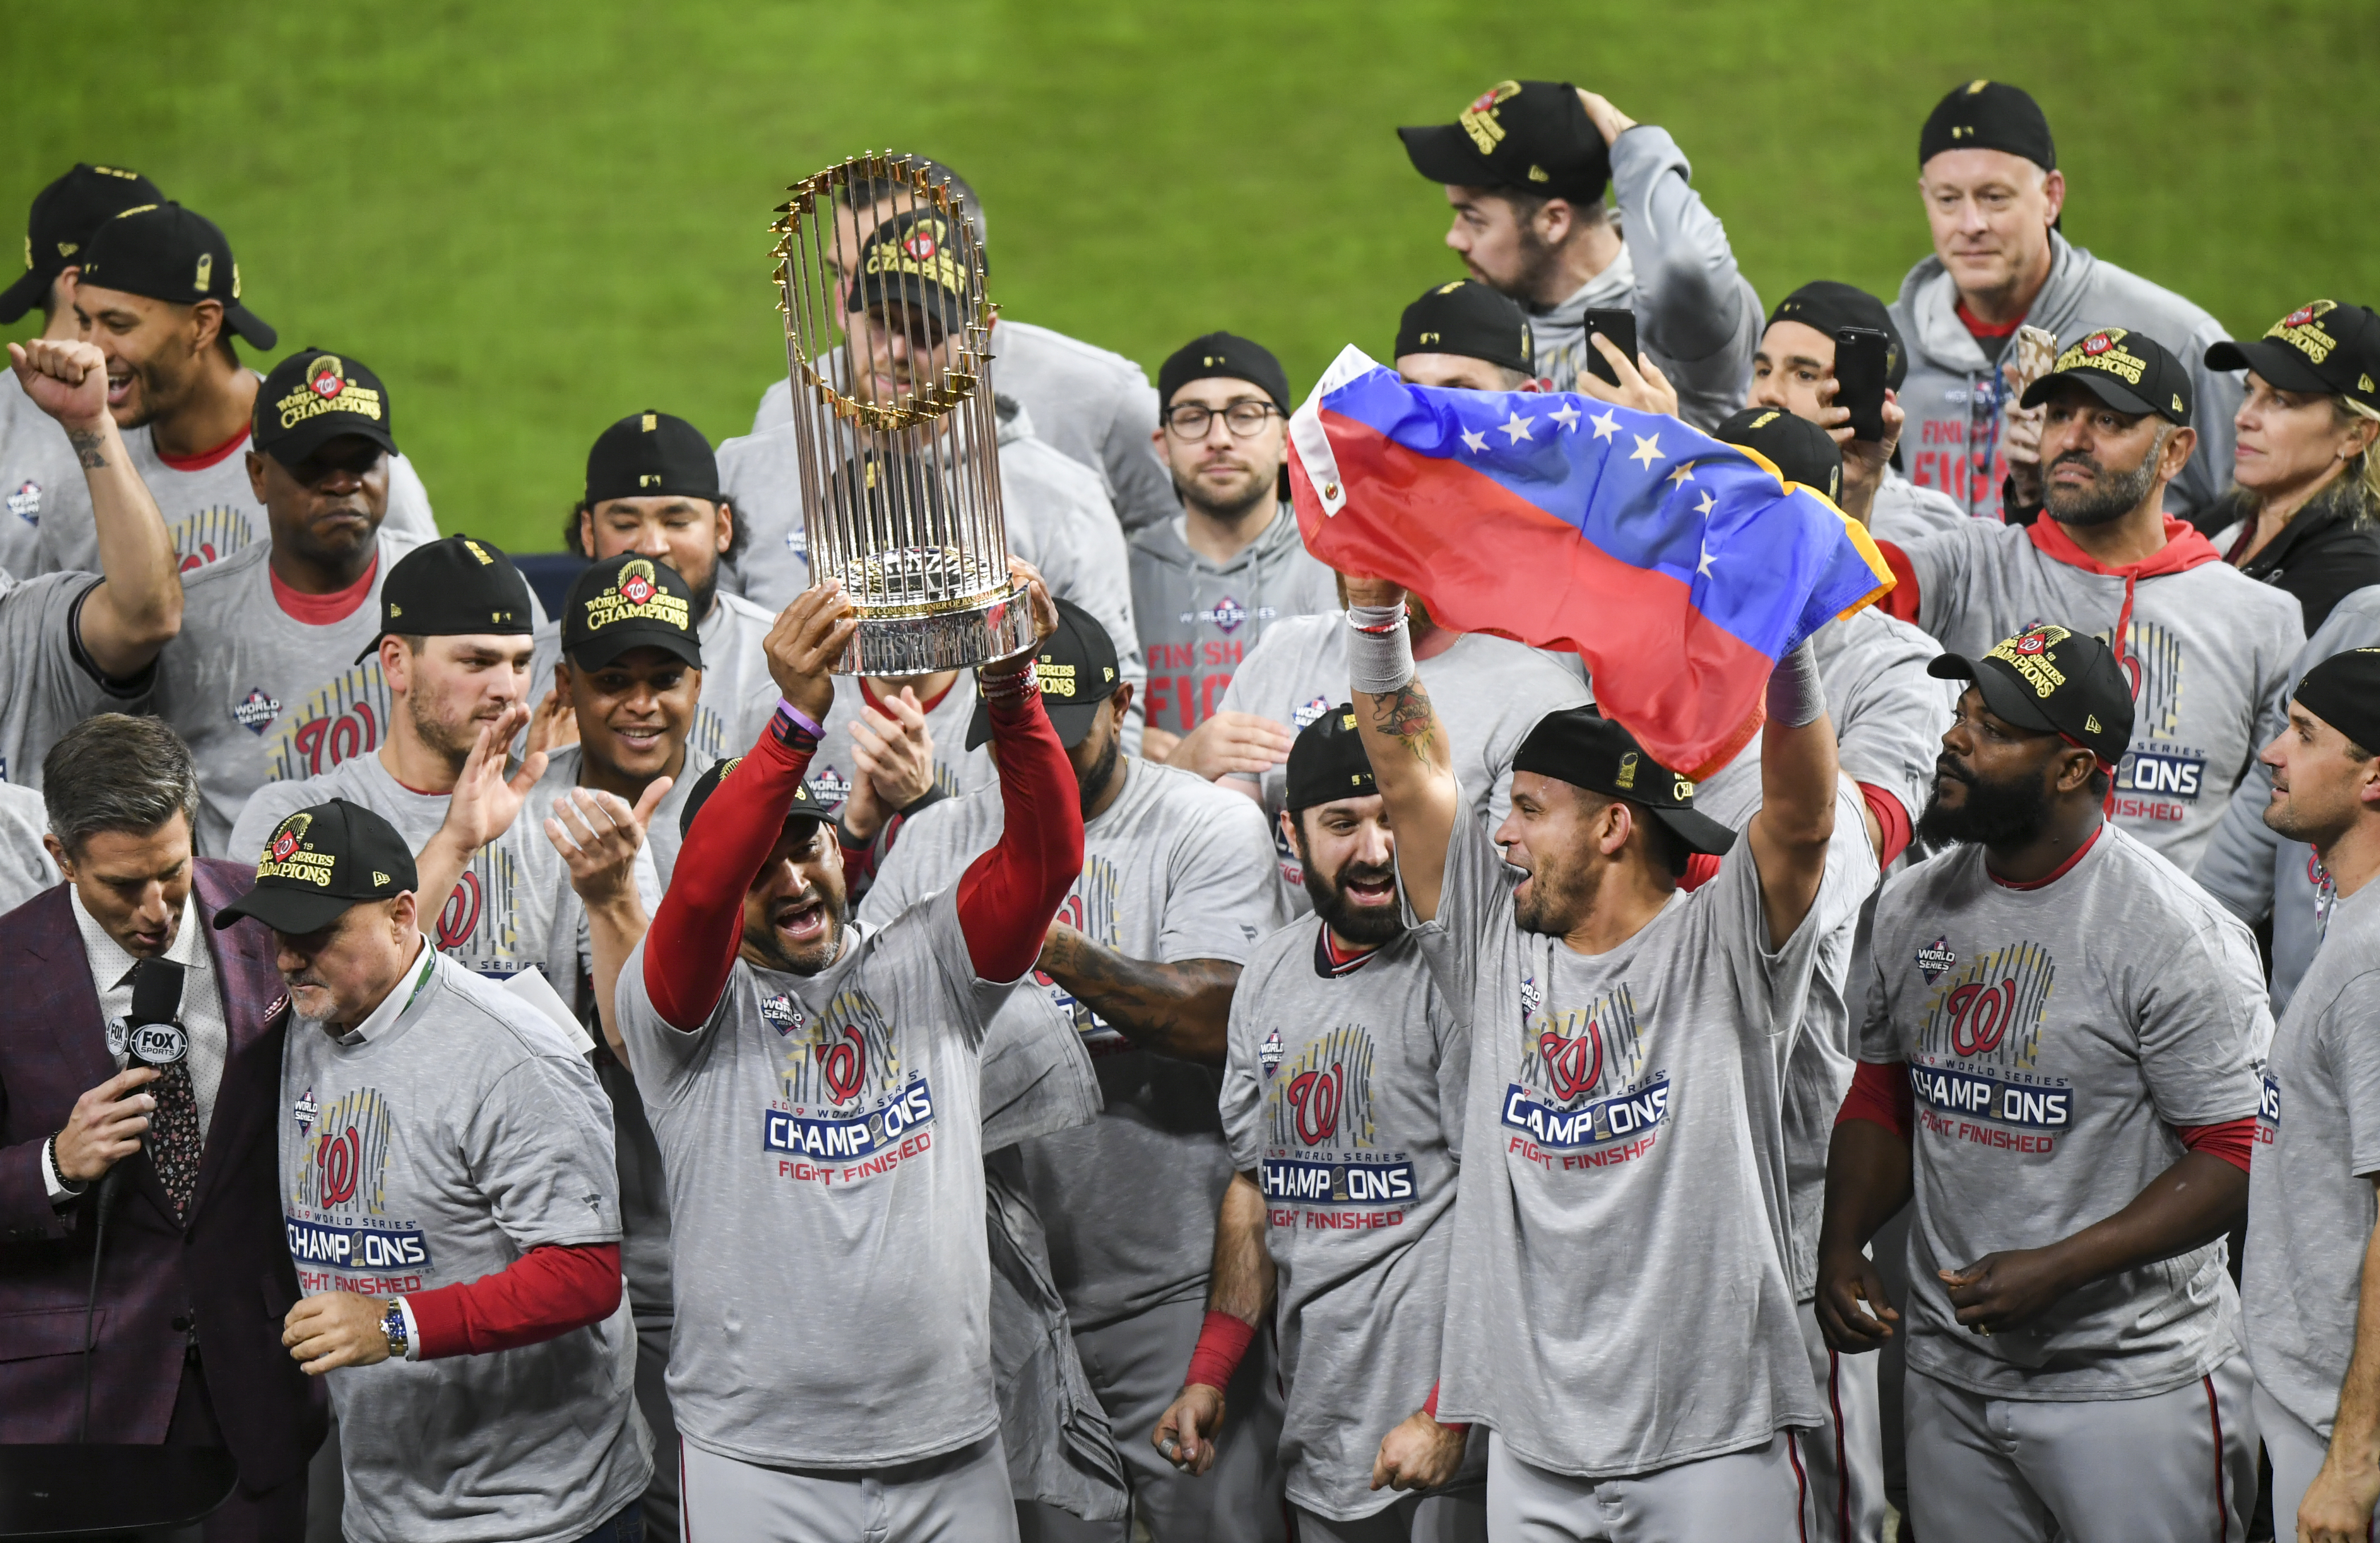 A baseball team gathers on a baseball field after winning a championship match. One of the players holds a trophy while another holds a flag.